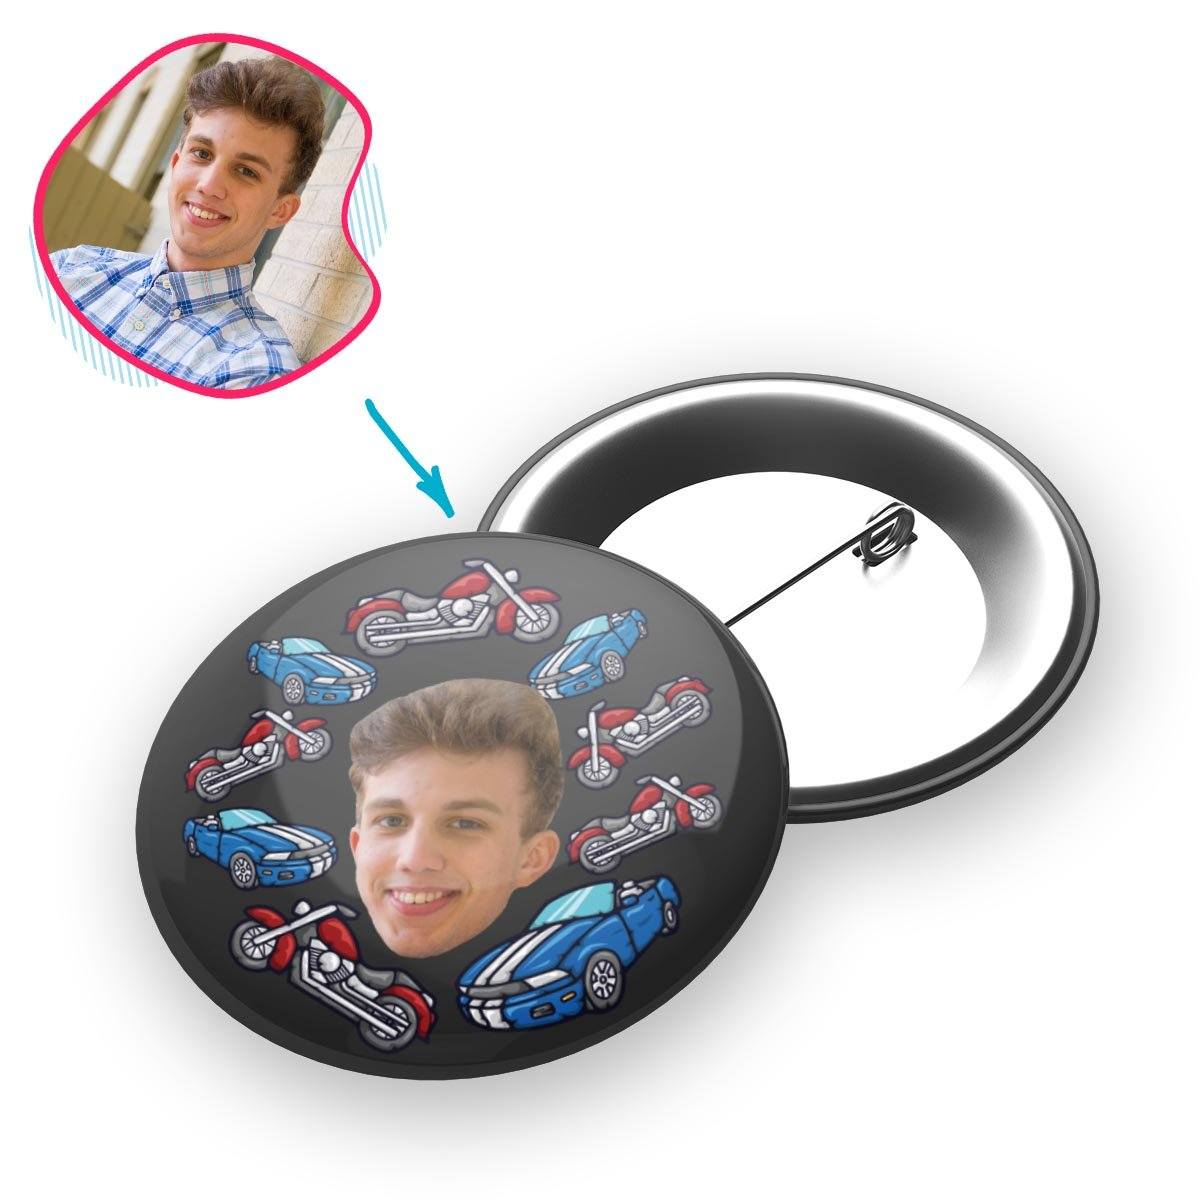 Dark Cars & Motorbikes personalized pin with photo of face printed on it